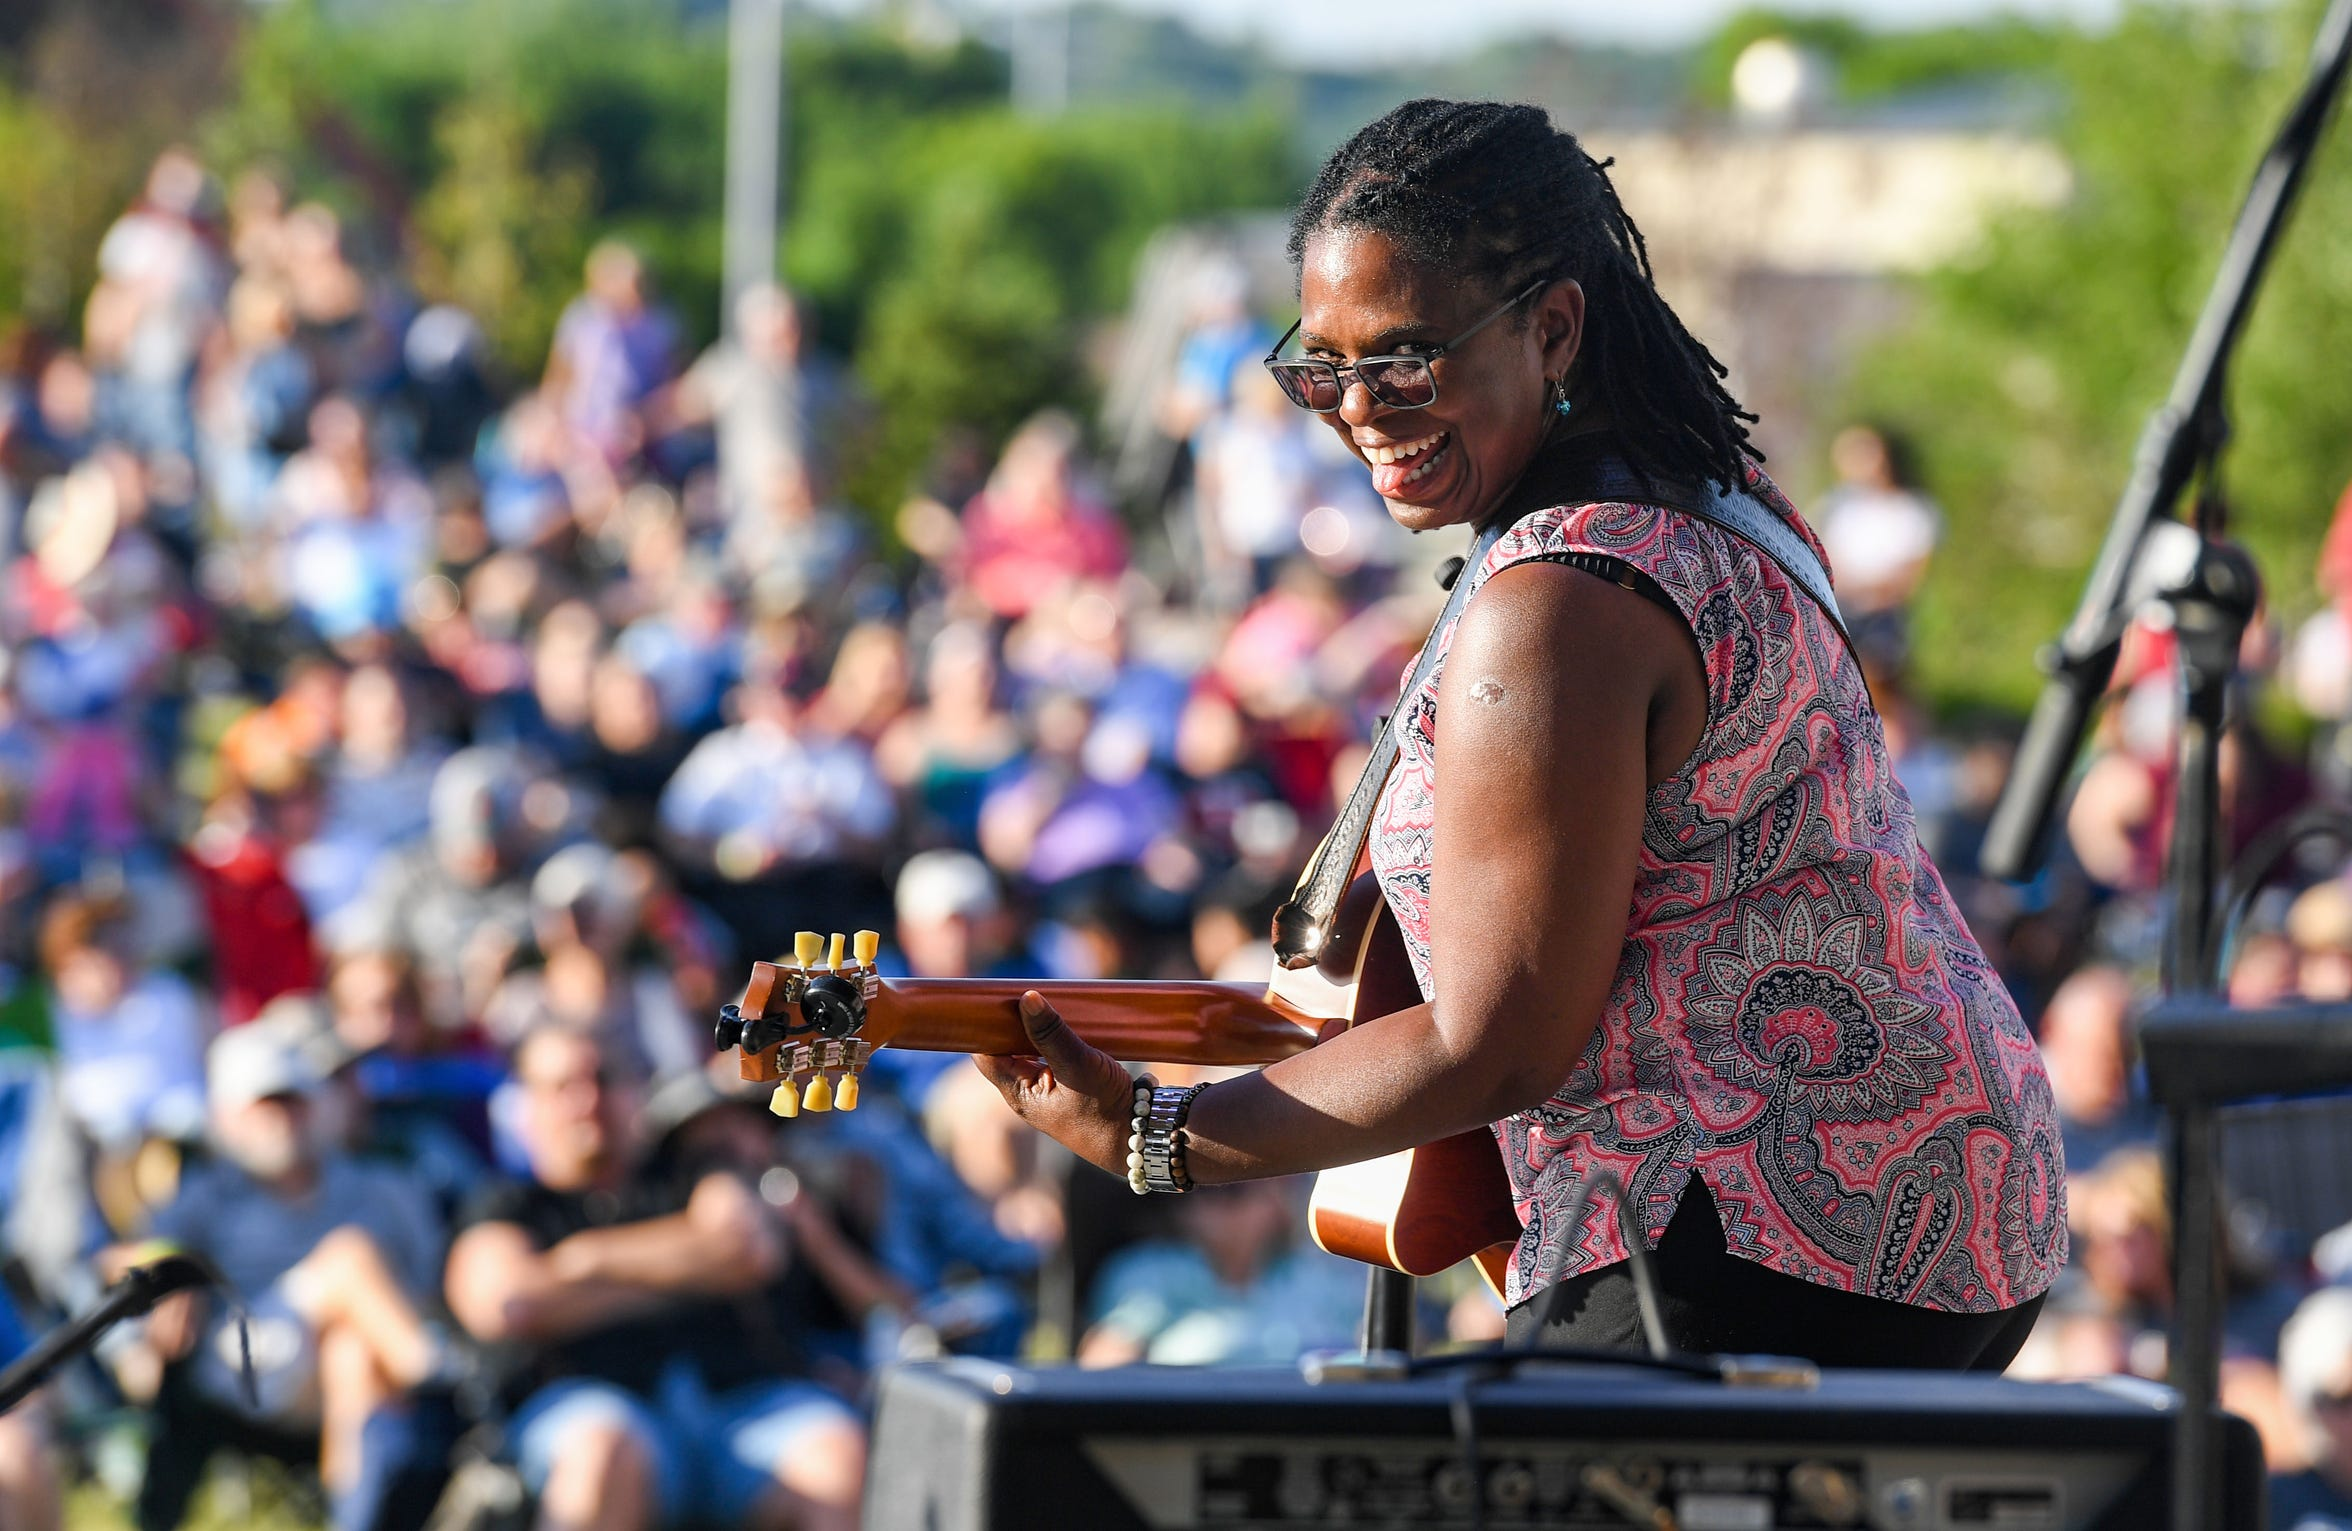 Ruthie Foster looks back playfully at the band during her performance for opening night of Levitt at the Falls on Friday, June 14, 2019 in Sioux Falls.